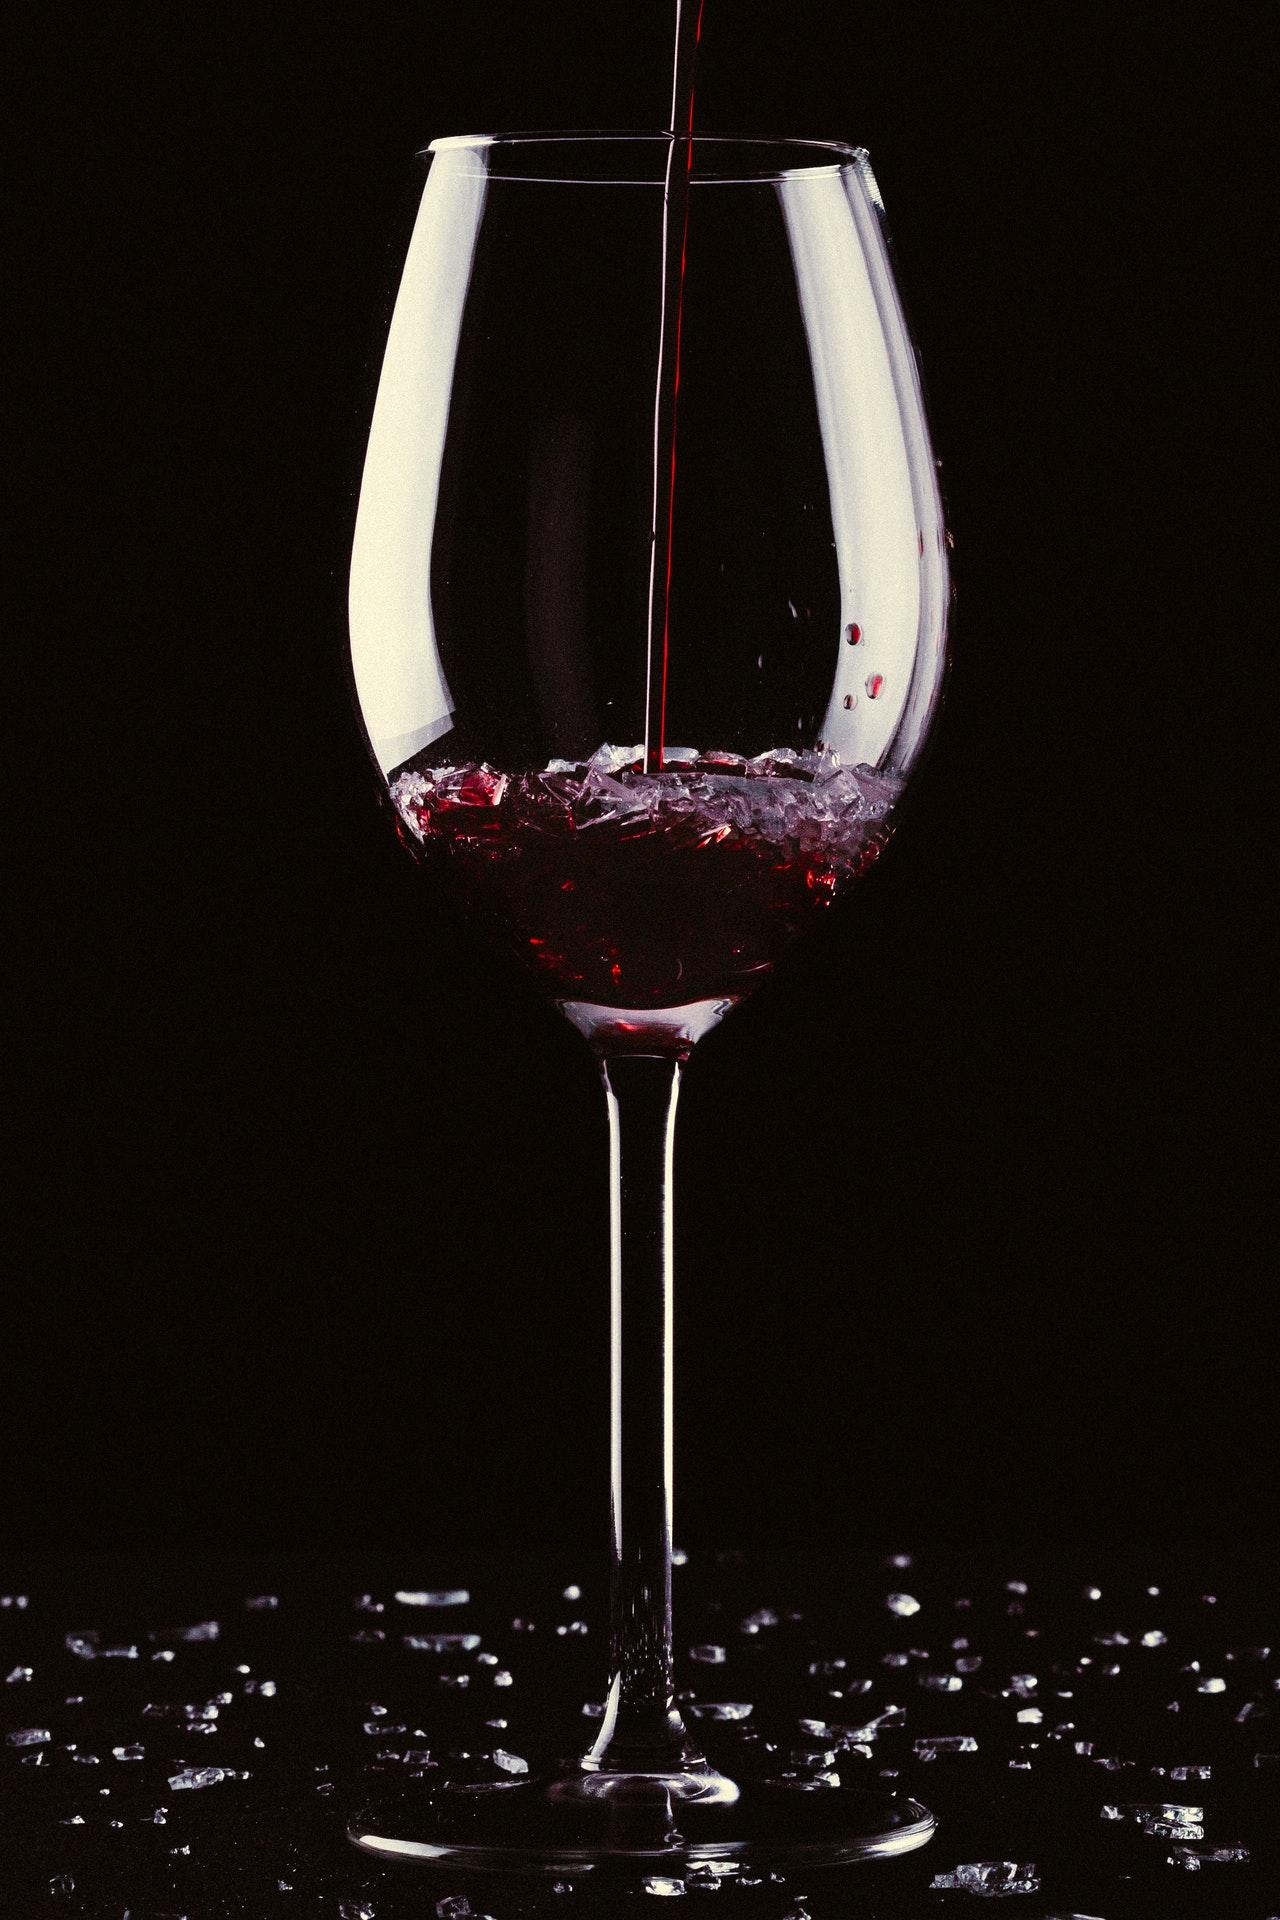 pouring-red-wine-in-glass